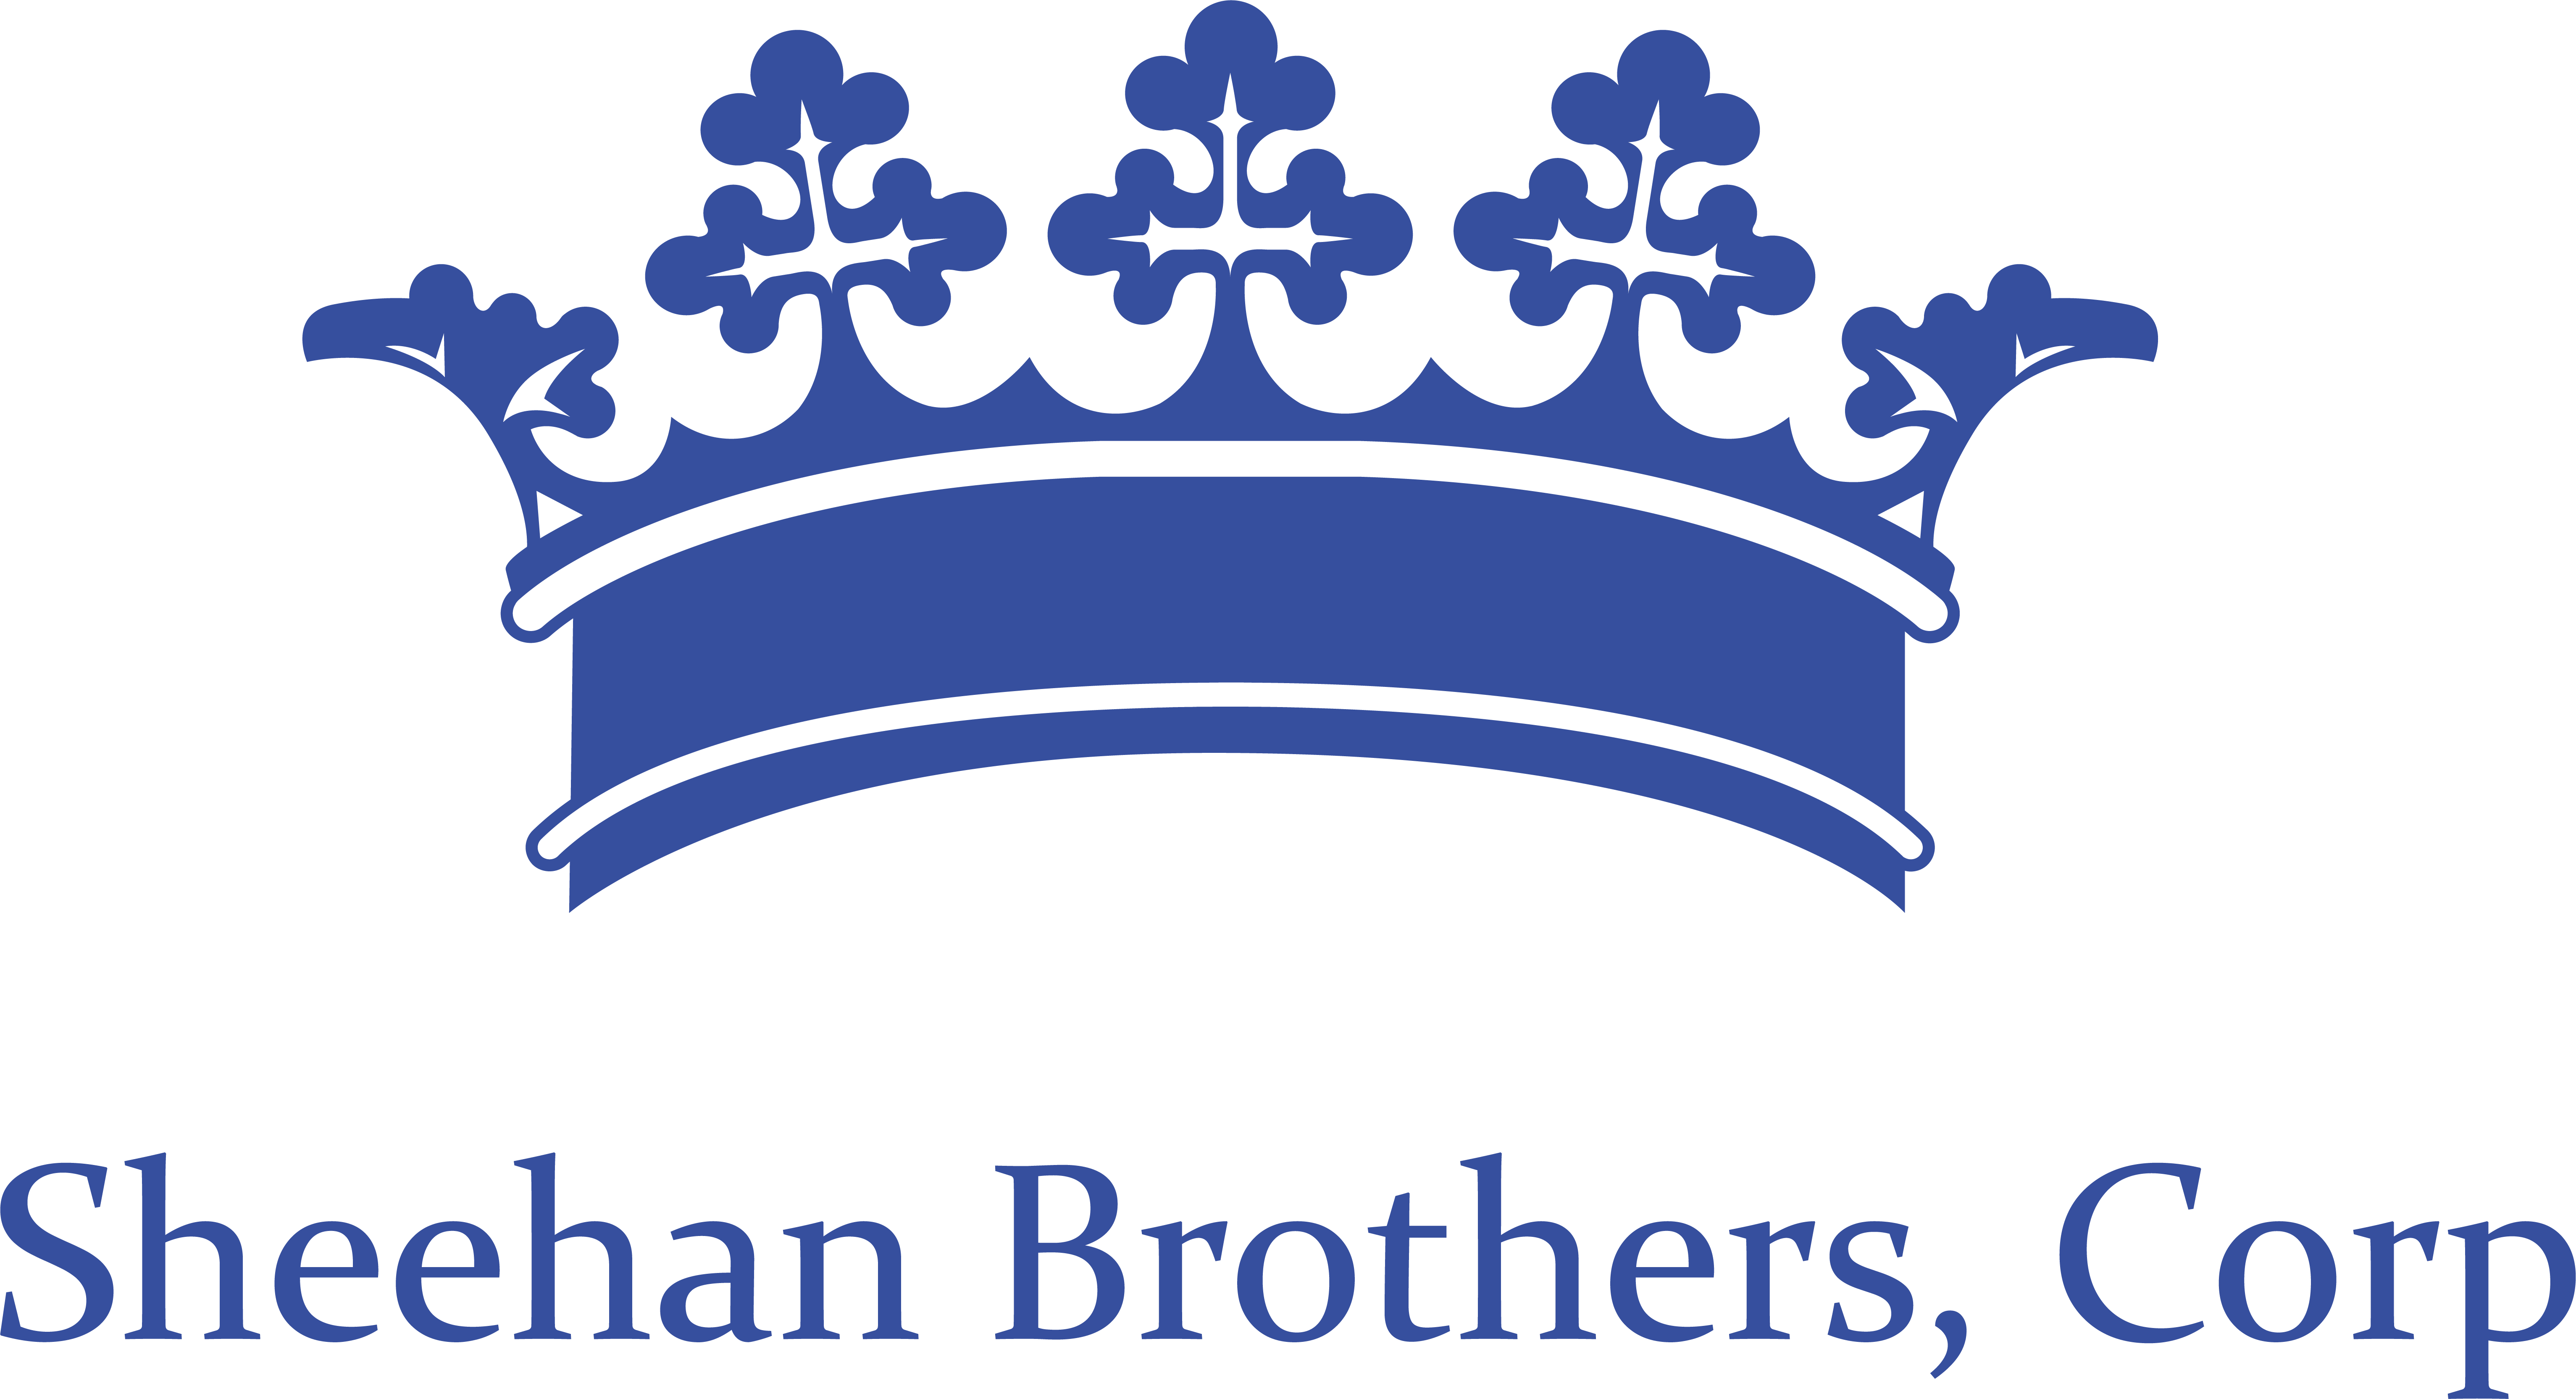 Introducing Sheehan Brothers Imports